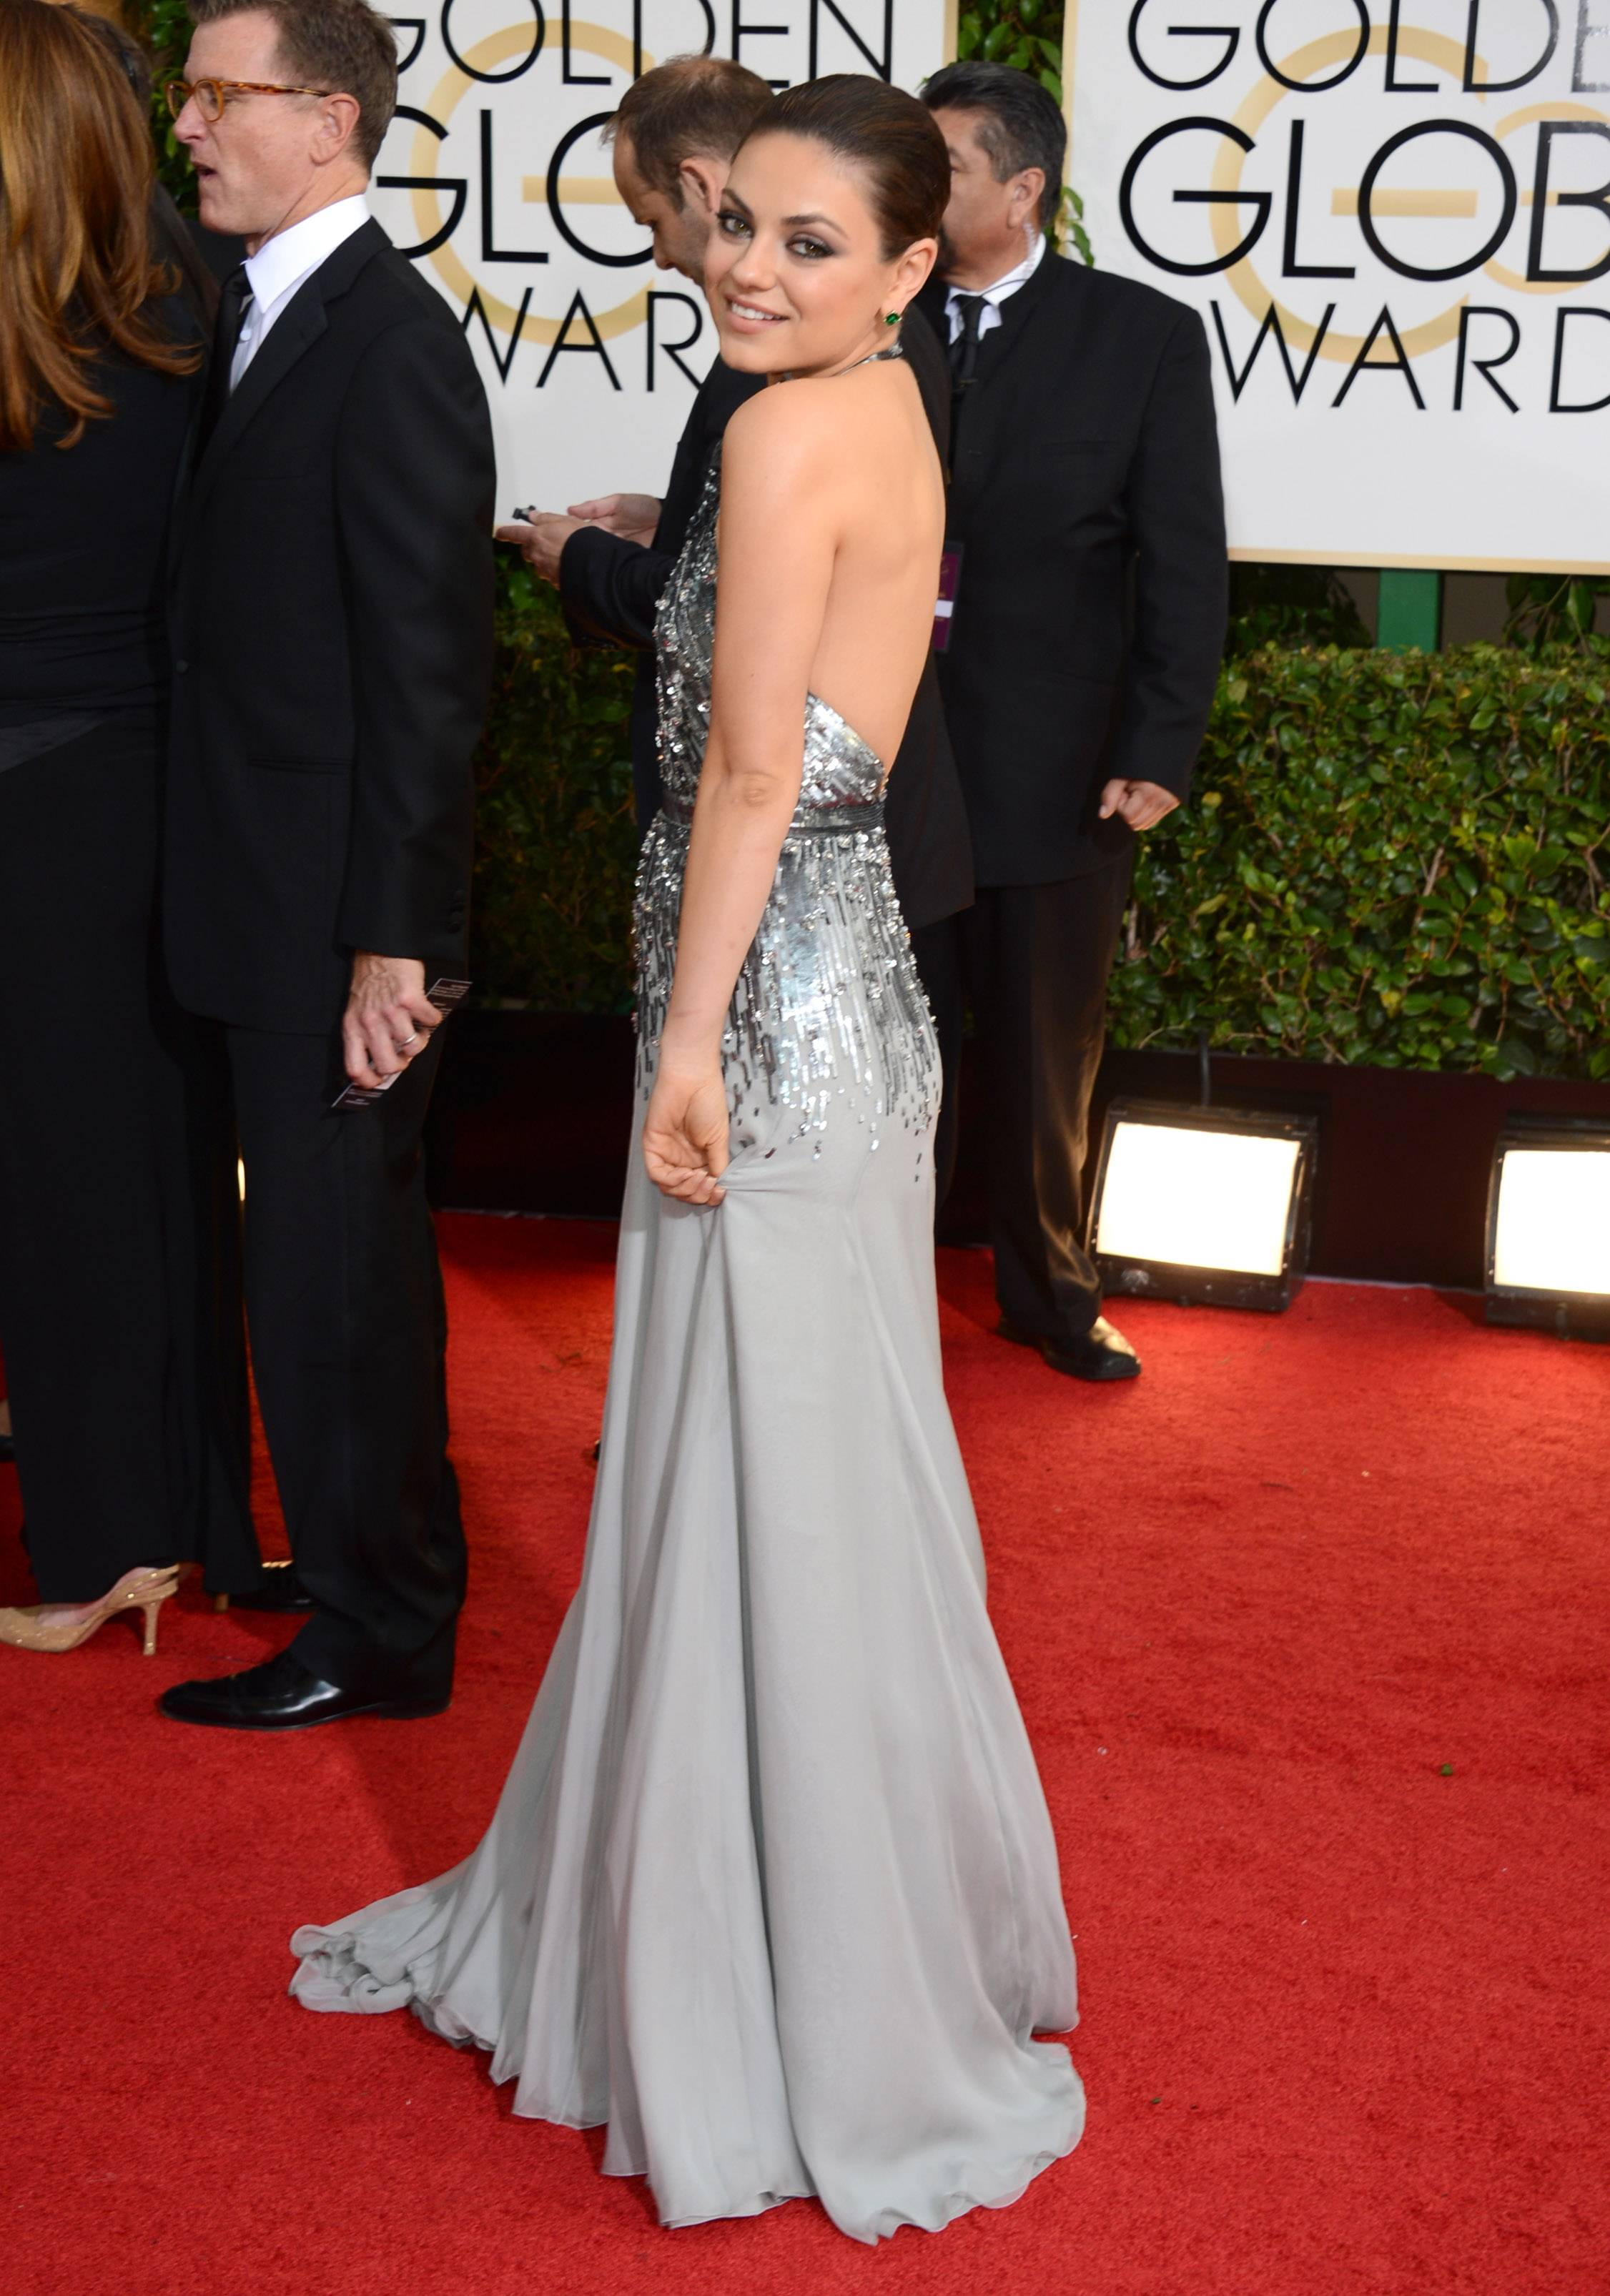 Mila Kunis bucks the black dress trend and goes for Tinsletown silver instead.